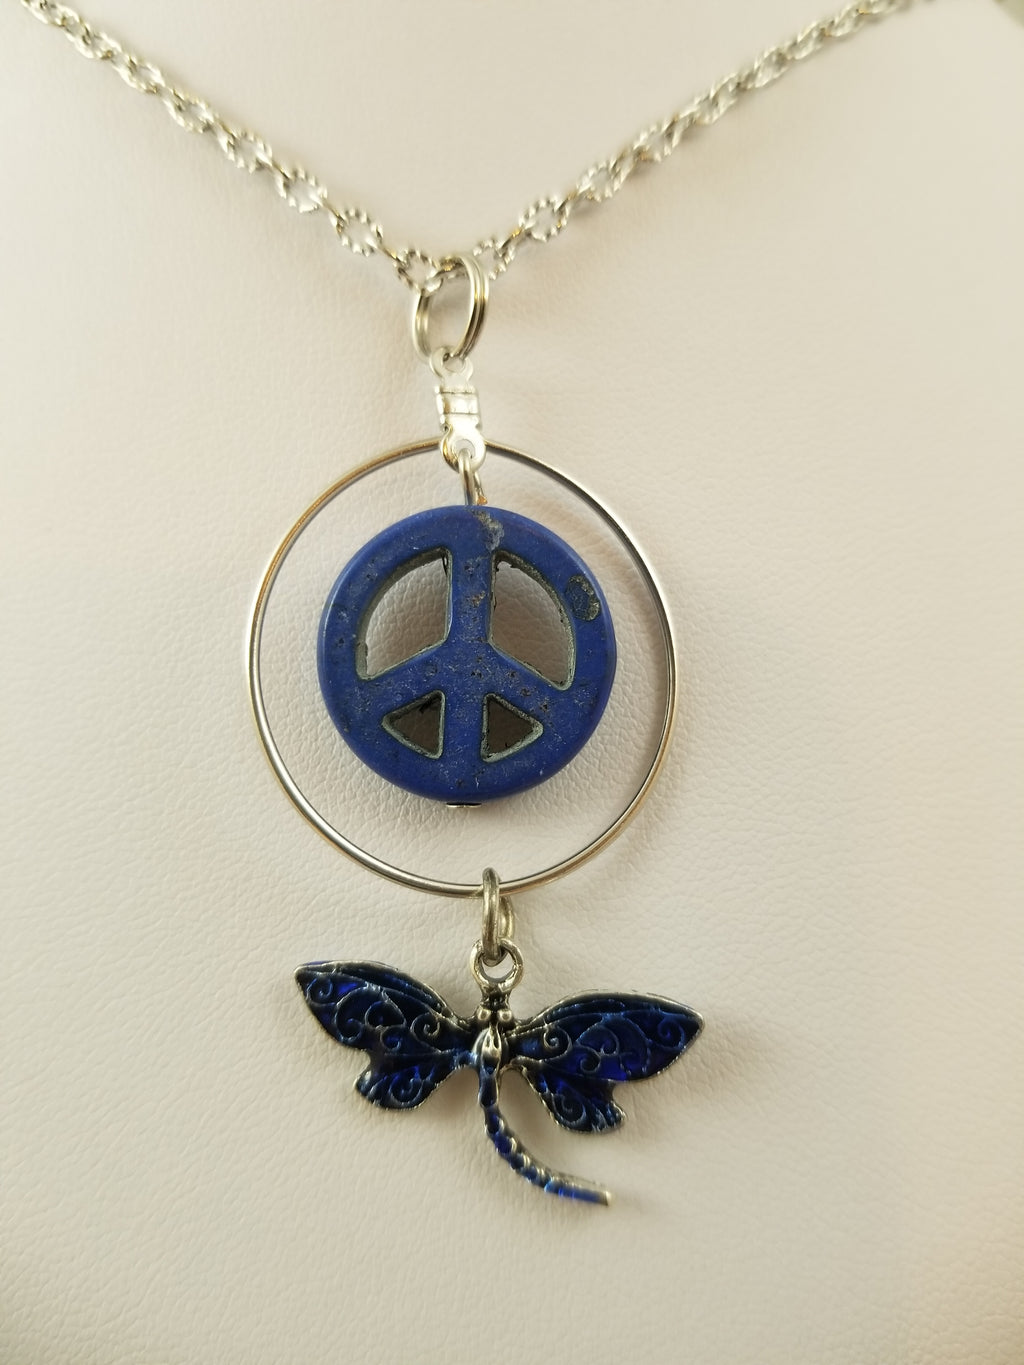 Peaceful Dragonfly Simply Charming Necklace